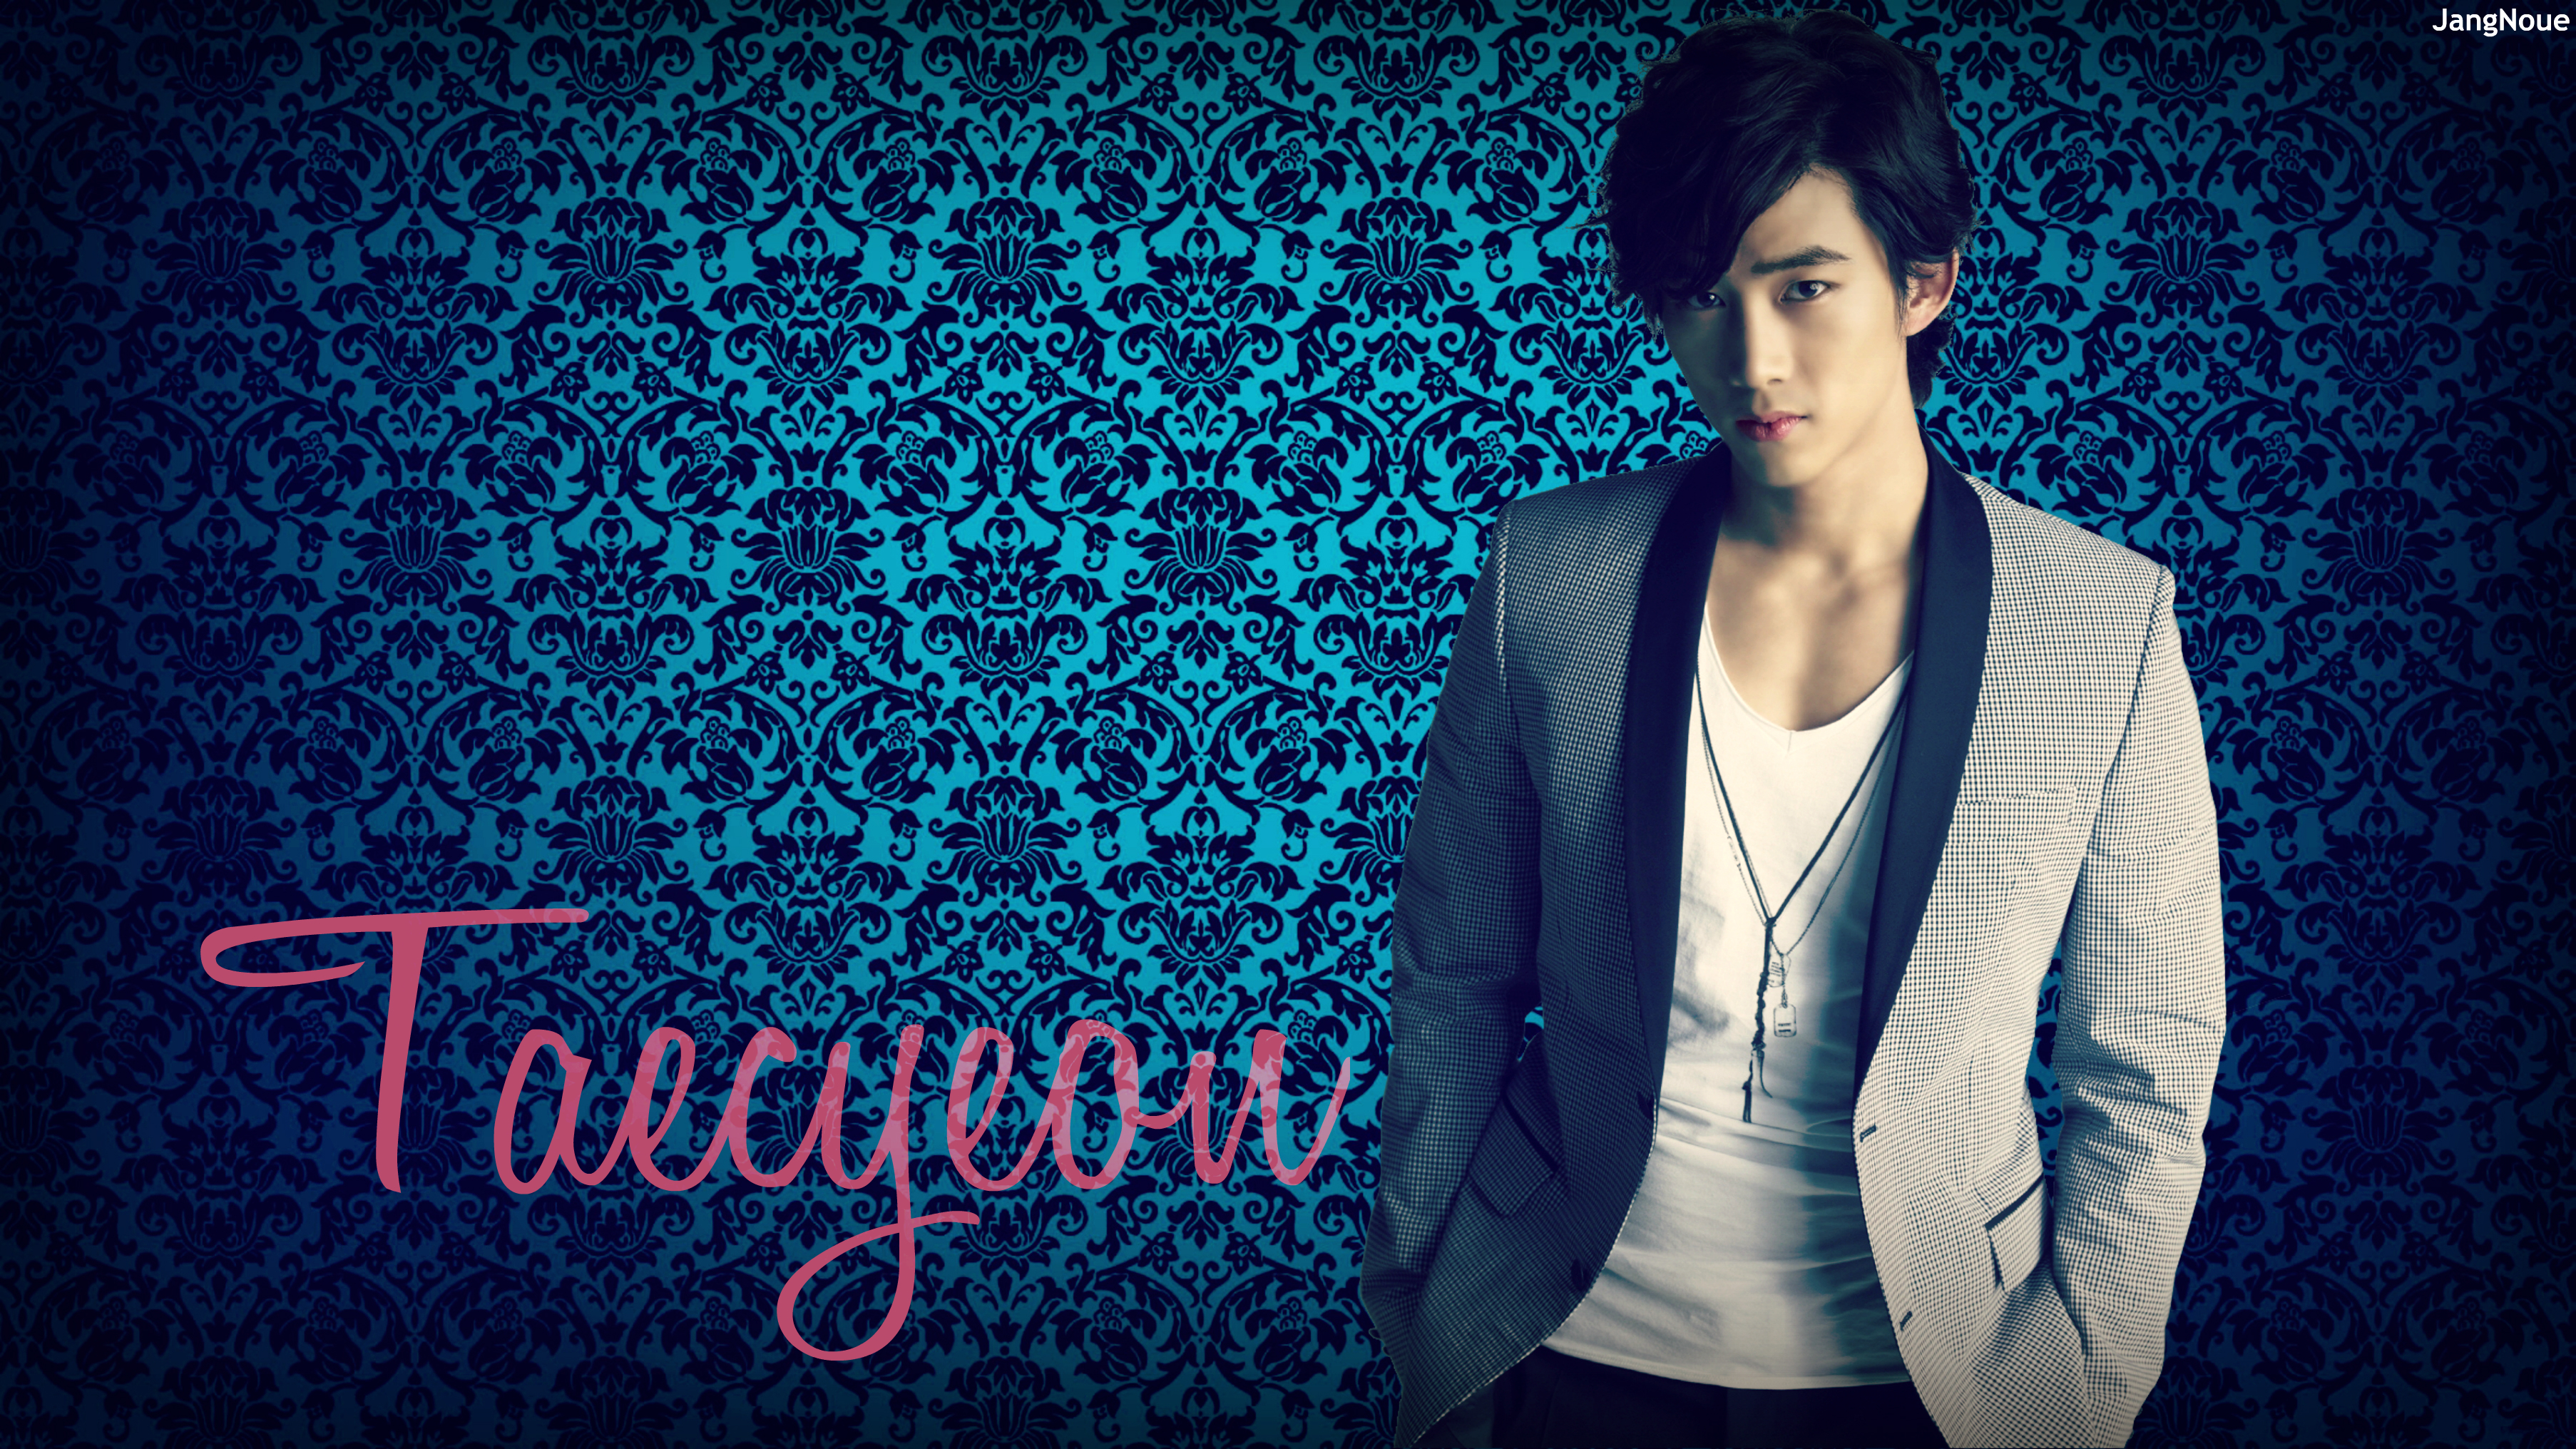 47] Taecyeon Wallpaper 2015 on WallpaperSafari 3612x2032